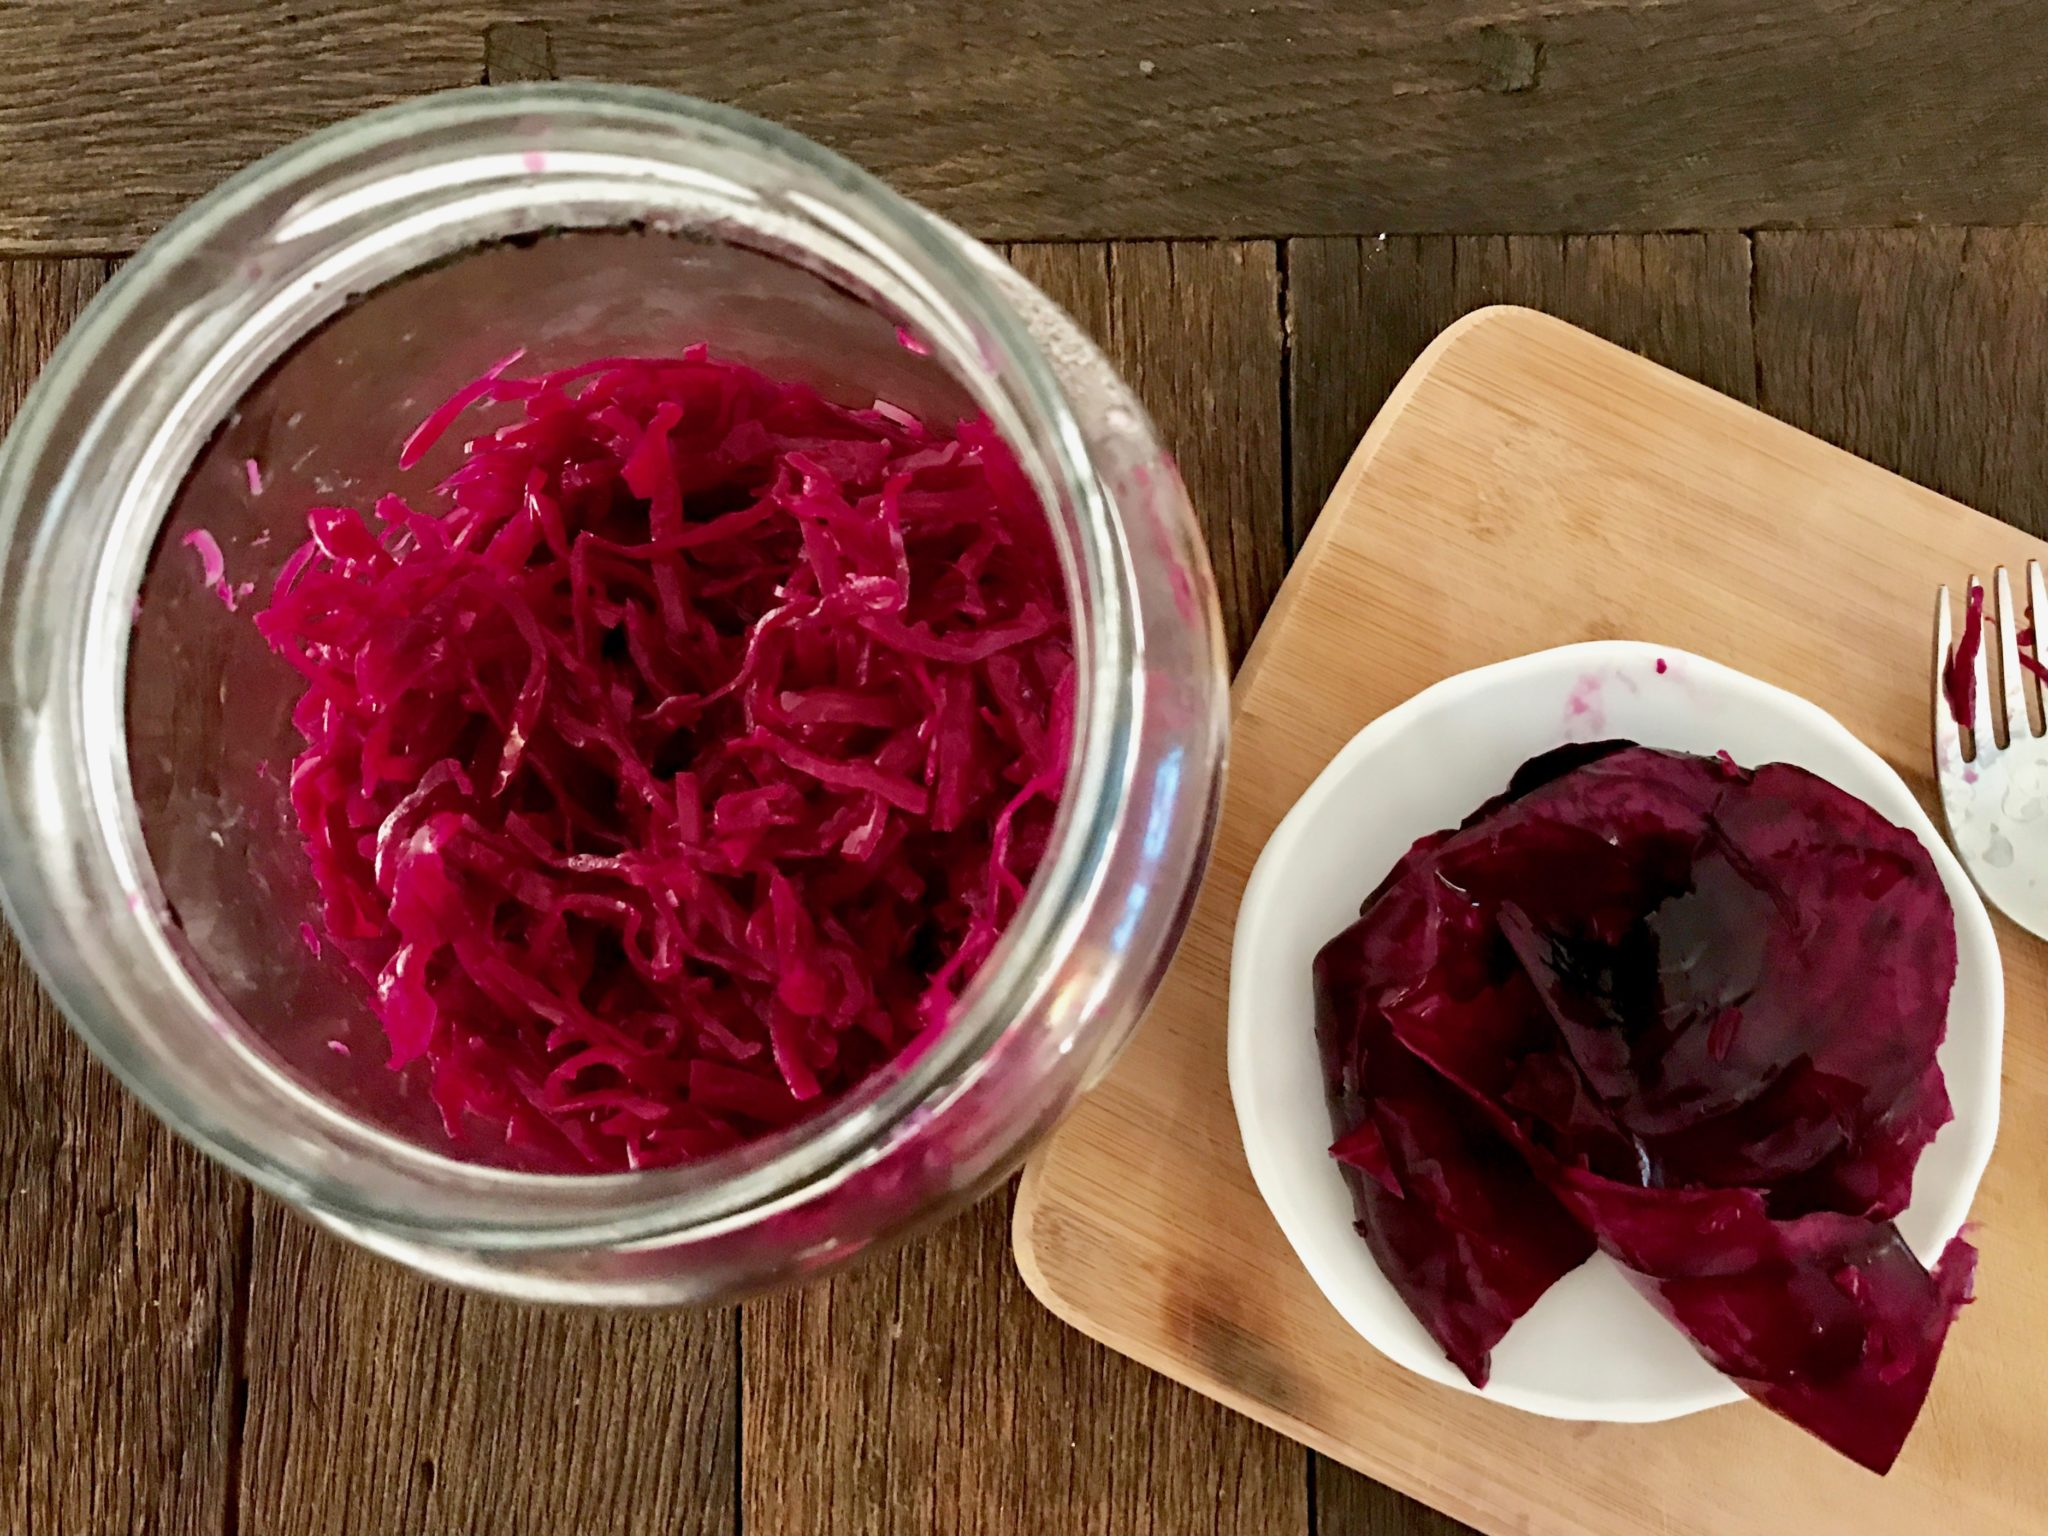 finished sauerkraut after 1 month